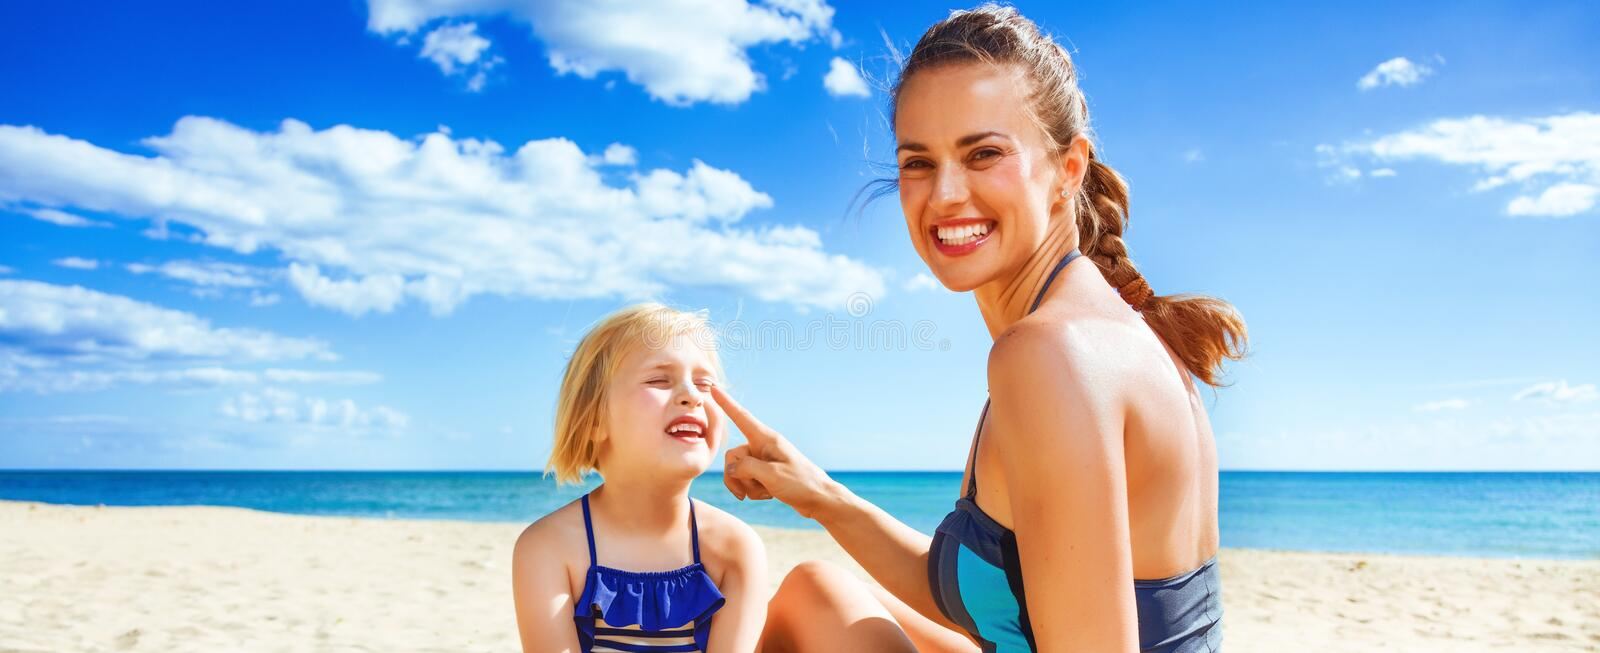 Happy young mother and daughter on beach applying sun block stock photo